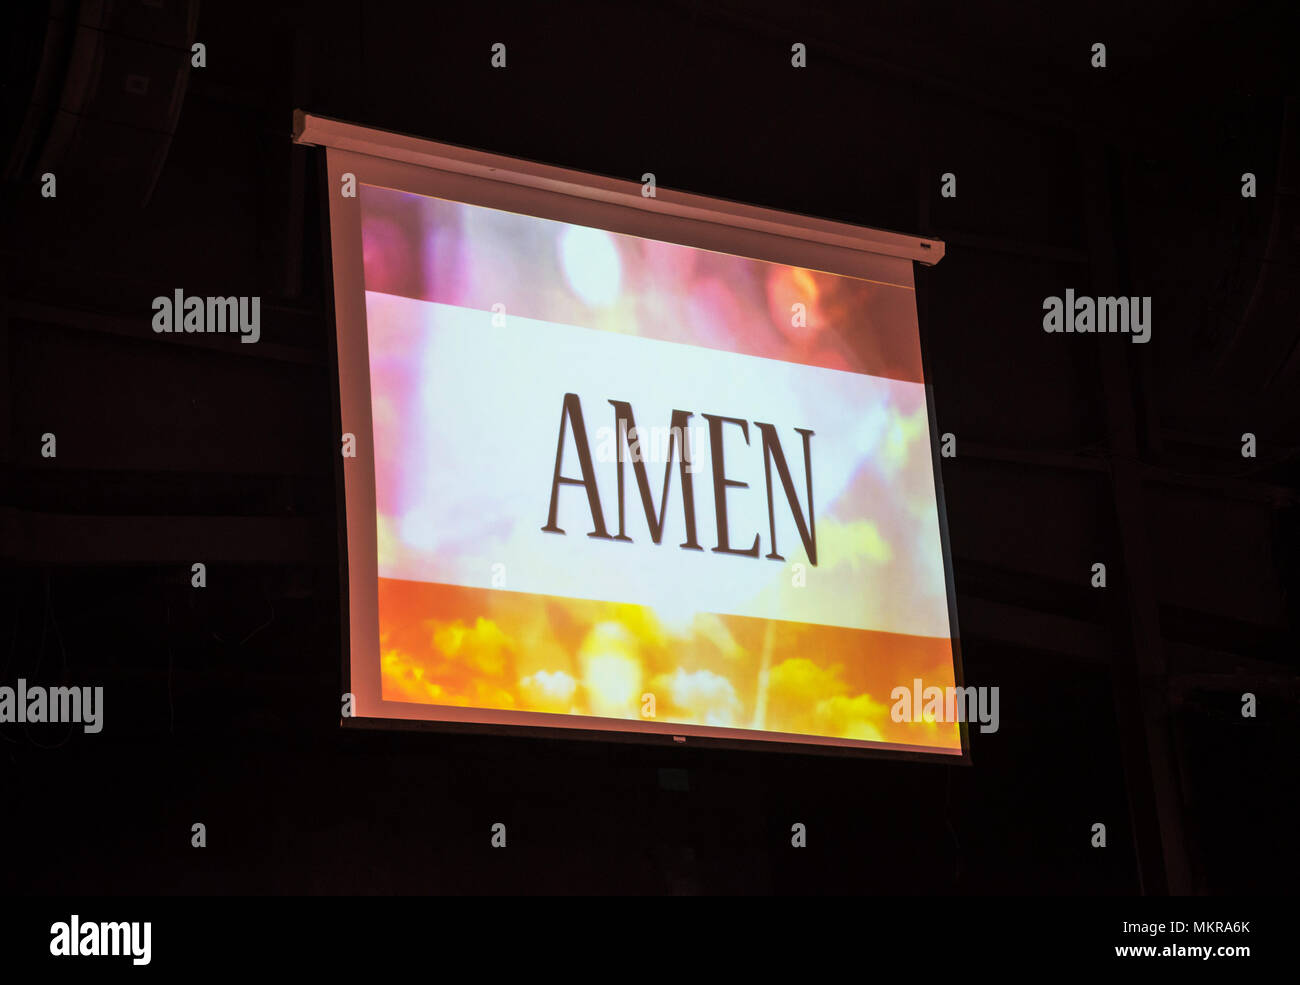 Amen sign projected onto a giant screen at a Baptist Church. - Stock Image